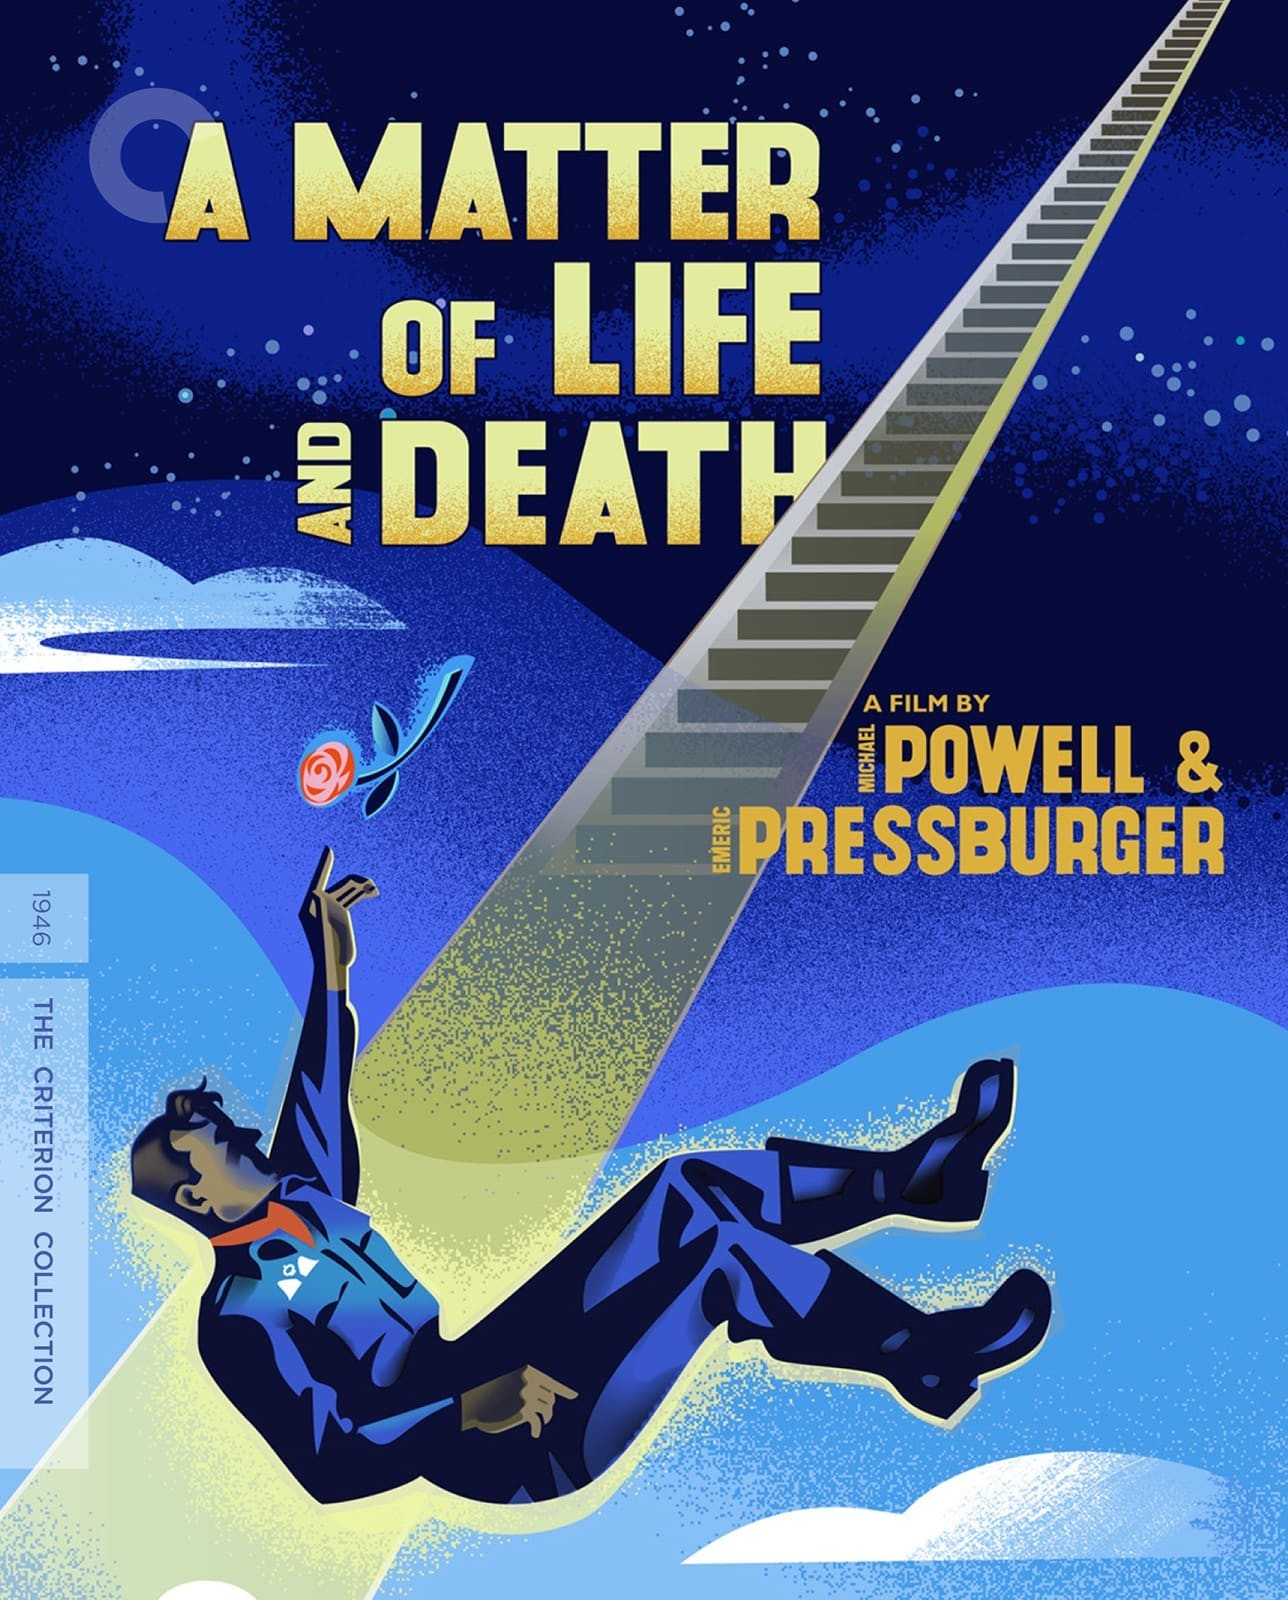 A Matter of Life and Death (The Criterion Collection)(1946) Blu-ray